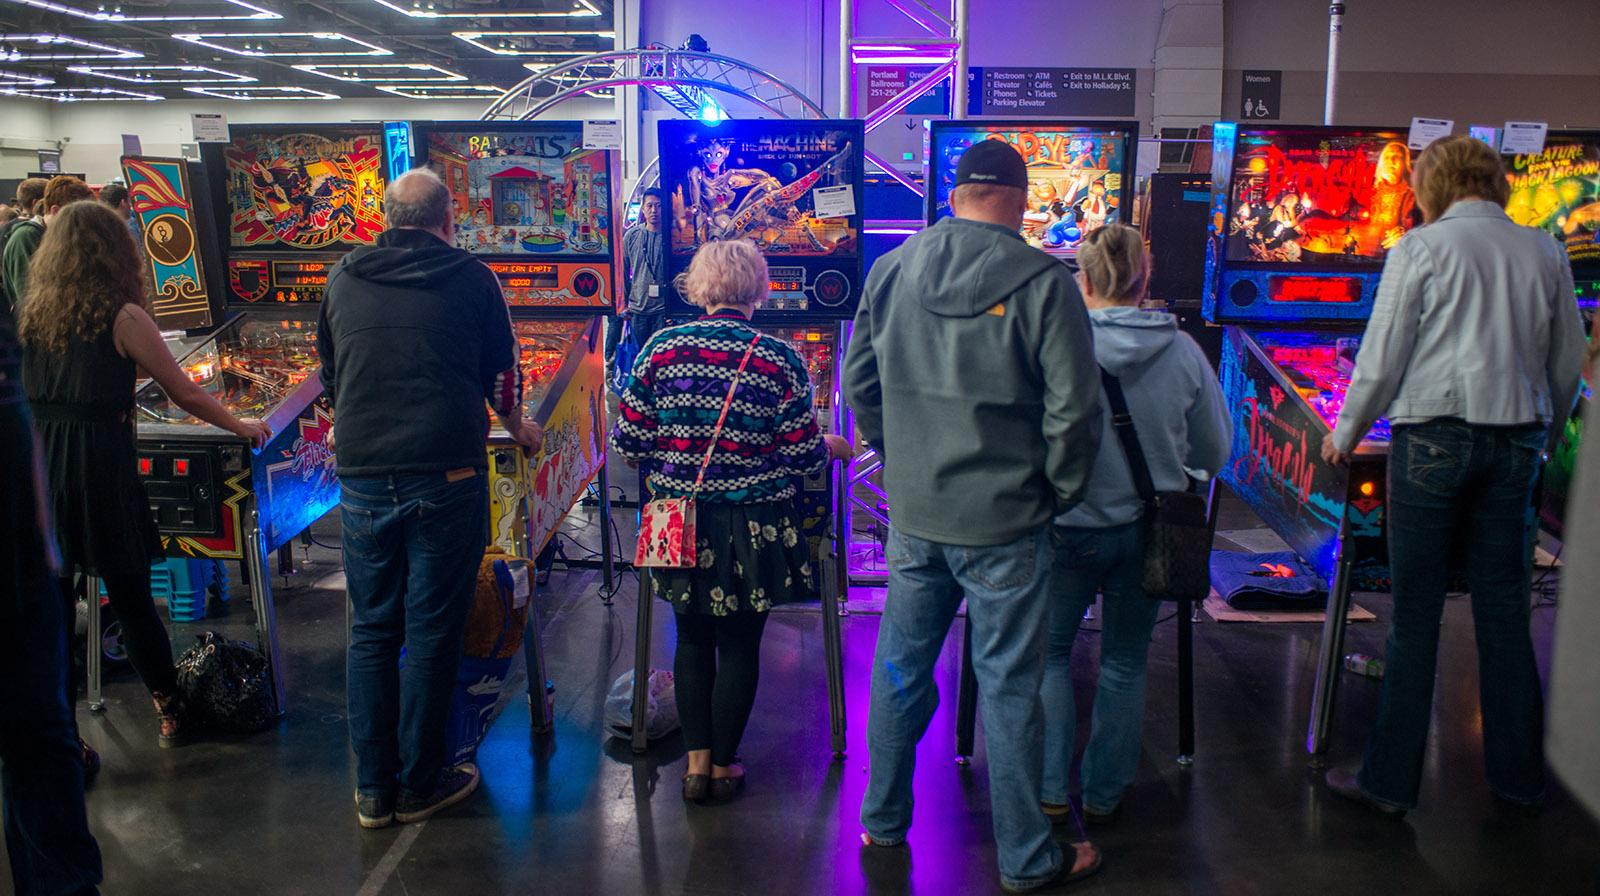 Gamers of all ages filled the Oregon Convention Center over the weekend for the 2017 Portland Retro Gaming Expo, an event dedicated to continuing the legacy of classic video games. This year the event honors the Atari 2600 VCS, which turned 40 years old this year. (KATU photo taken October 22, 2017)